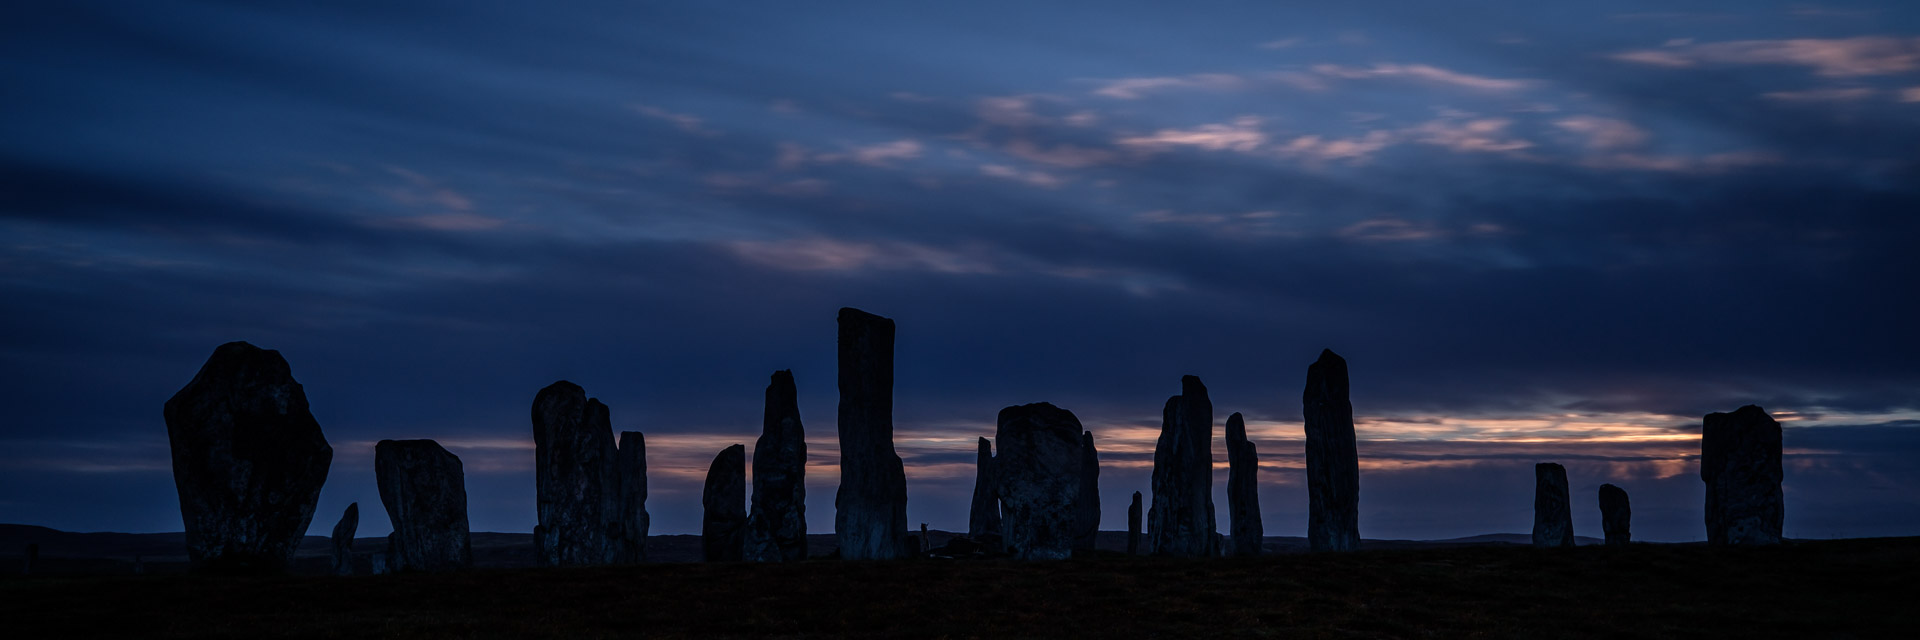 16.9.2016 - Callanish I (Sunrise, 7:08)